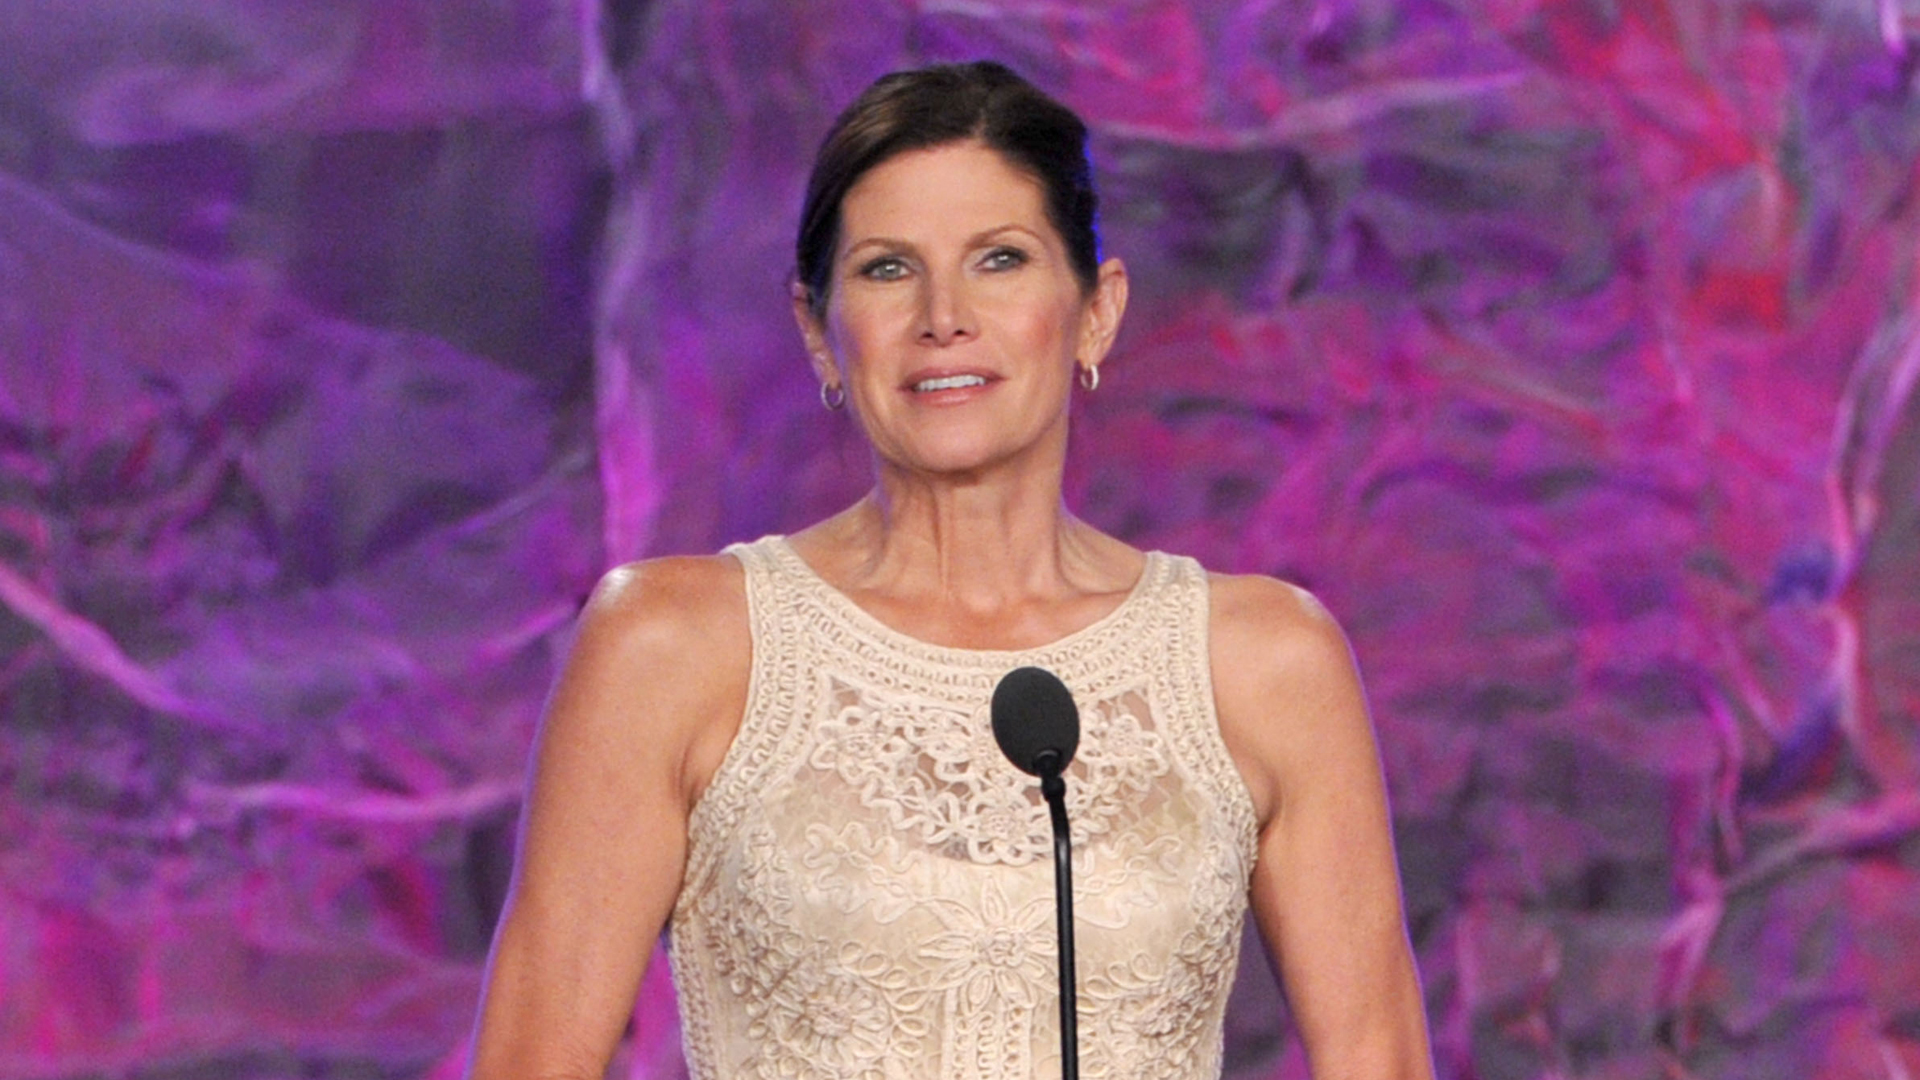 Former Rep. Mary Bono Mack speaks onstage at the 23rd Annual GLAAD Media Awards presented by Ketel One and Wells Fargo held at Westin Bonaventure Hotel on April 21, 2012 in Los Angeles, California. (Credit: Kevin Winter/Getty Images for GLAAD)